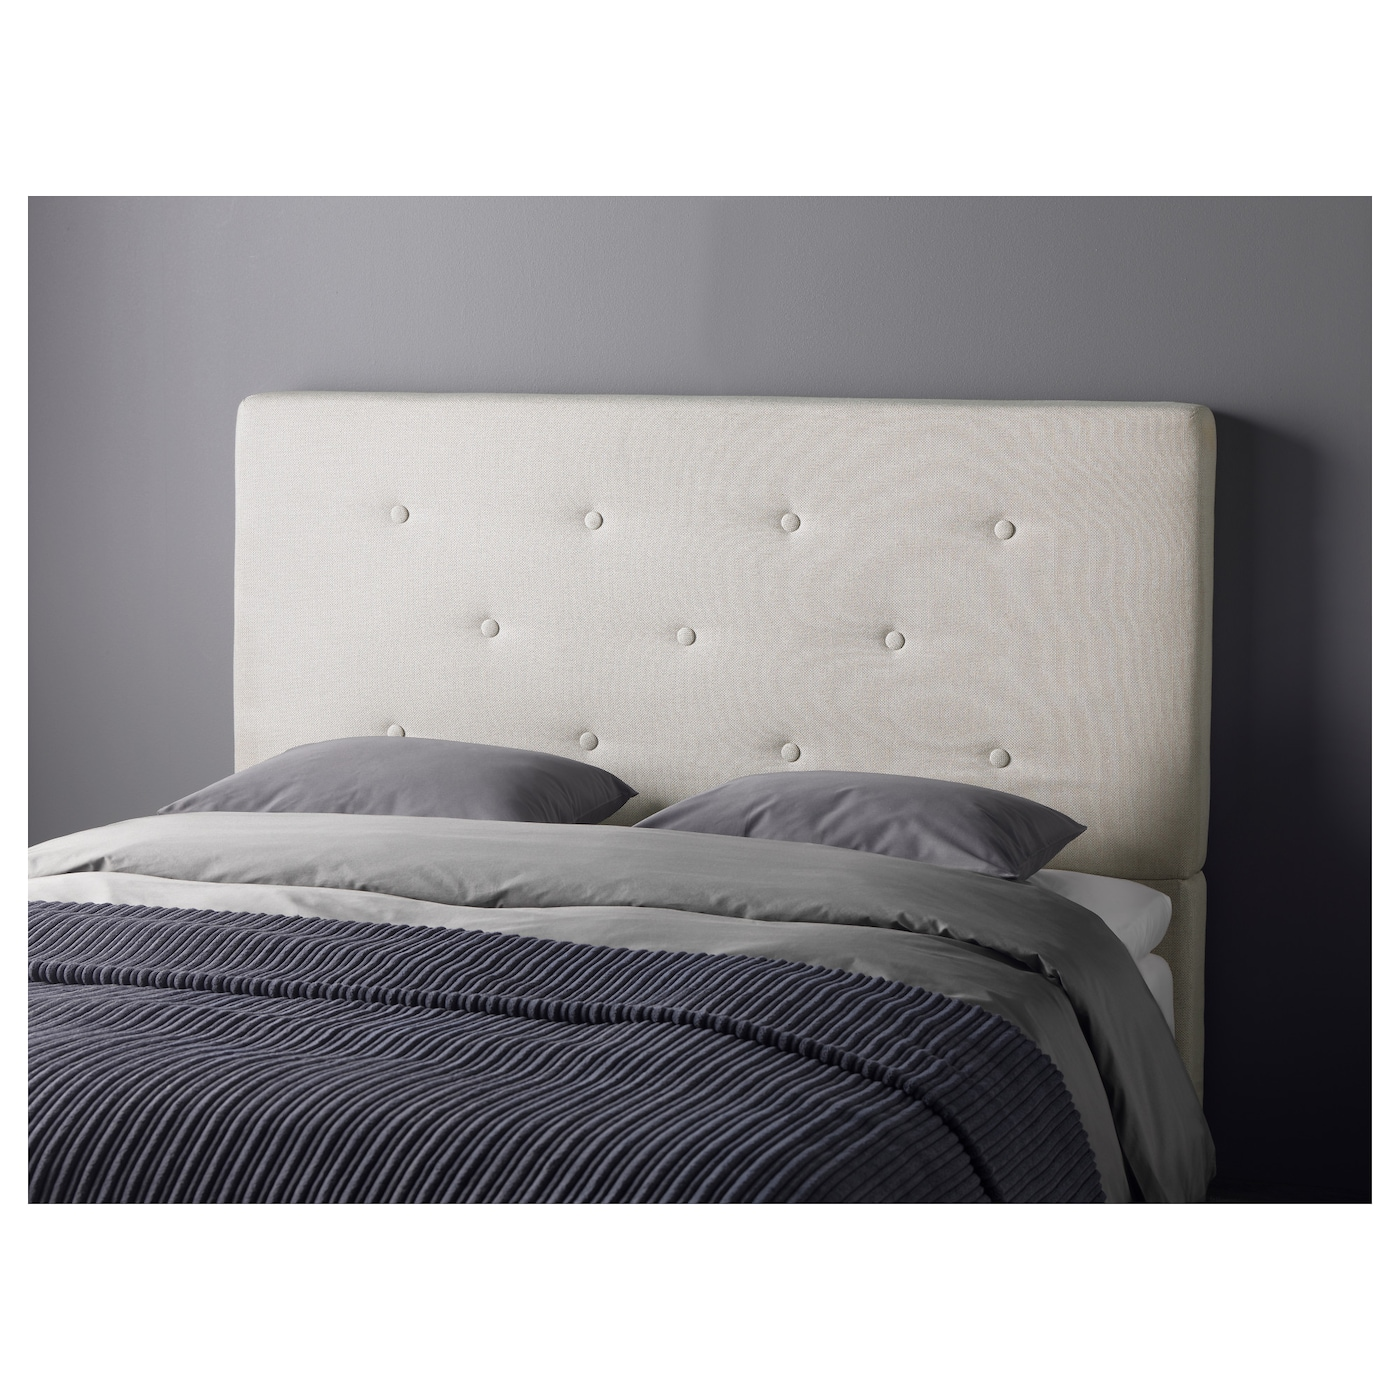 bekkestua headboard natural colour standard king ikea. Black Bedroom Furniture Sets. Home Design Ideas